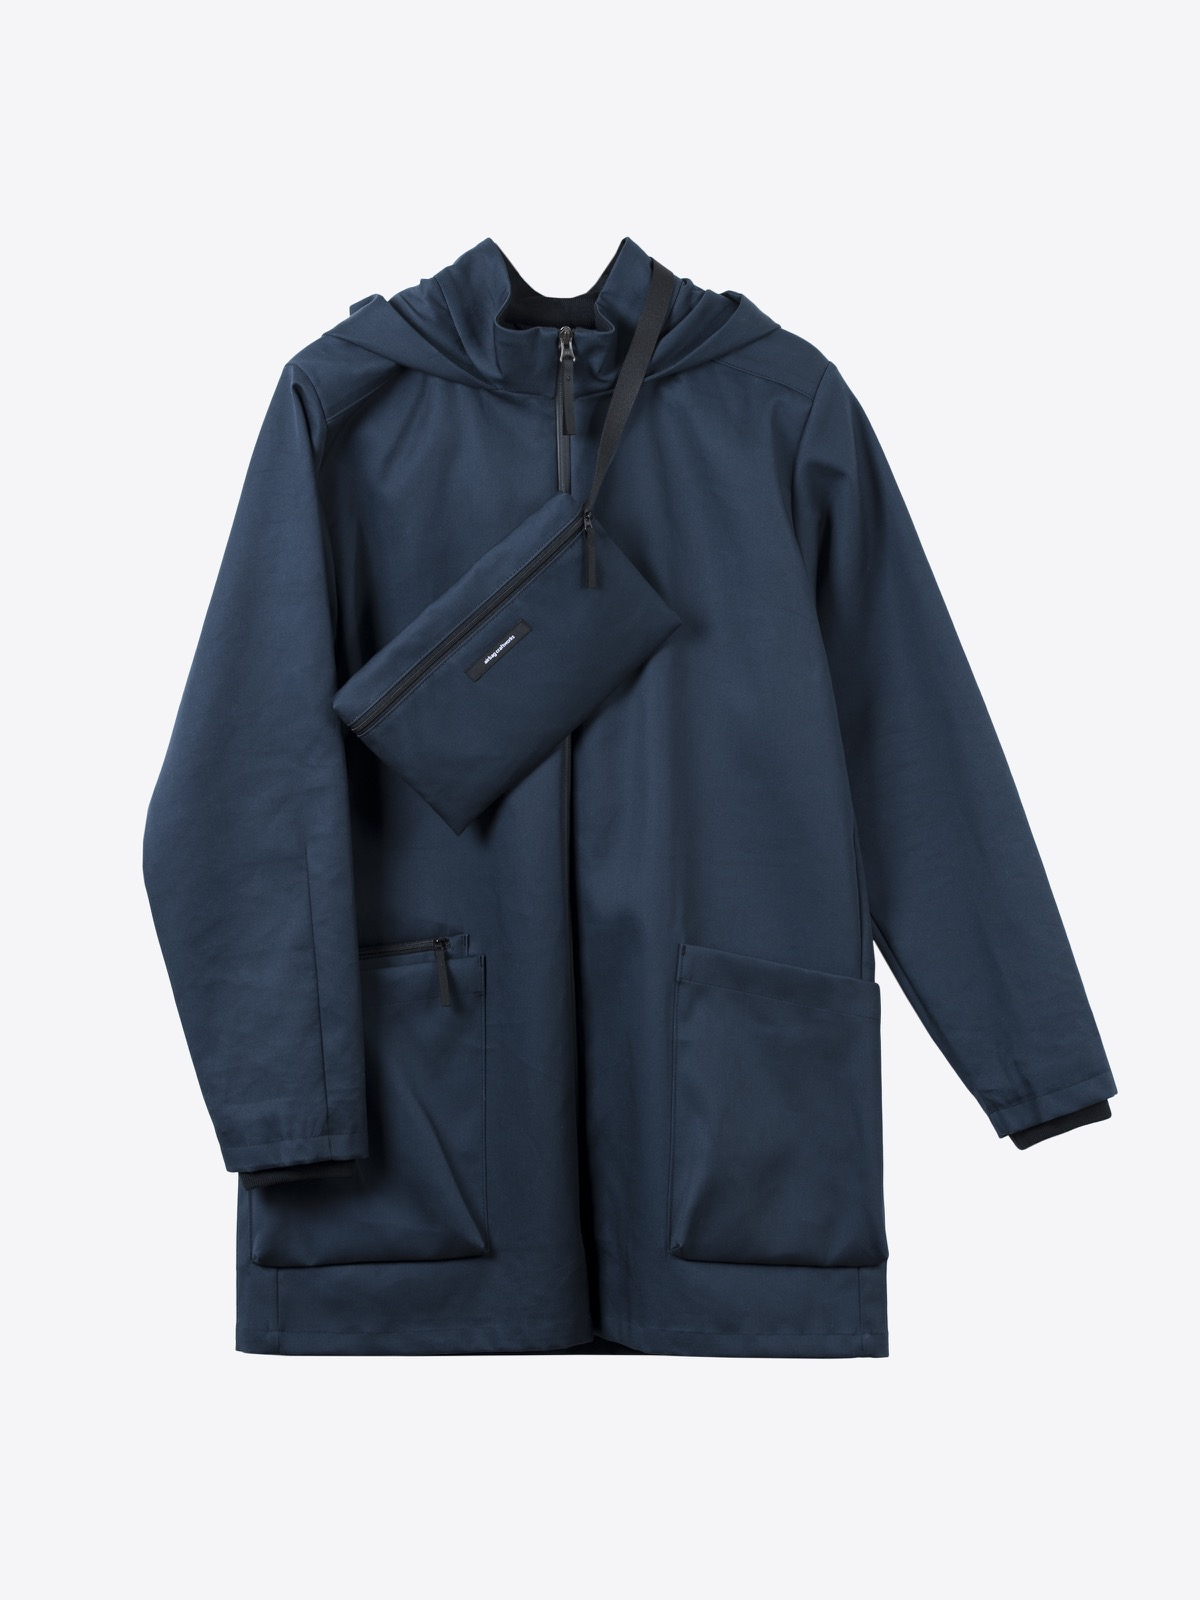 A2 coventry jacket premium incl. touch bag   double face cotton